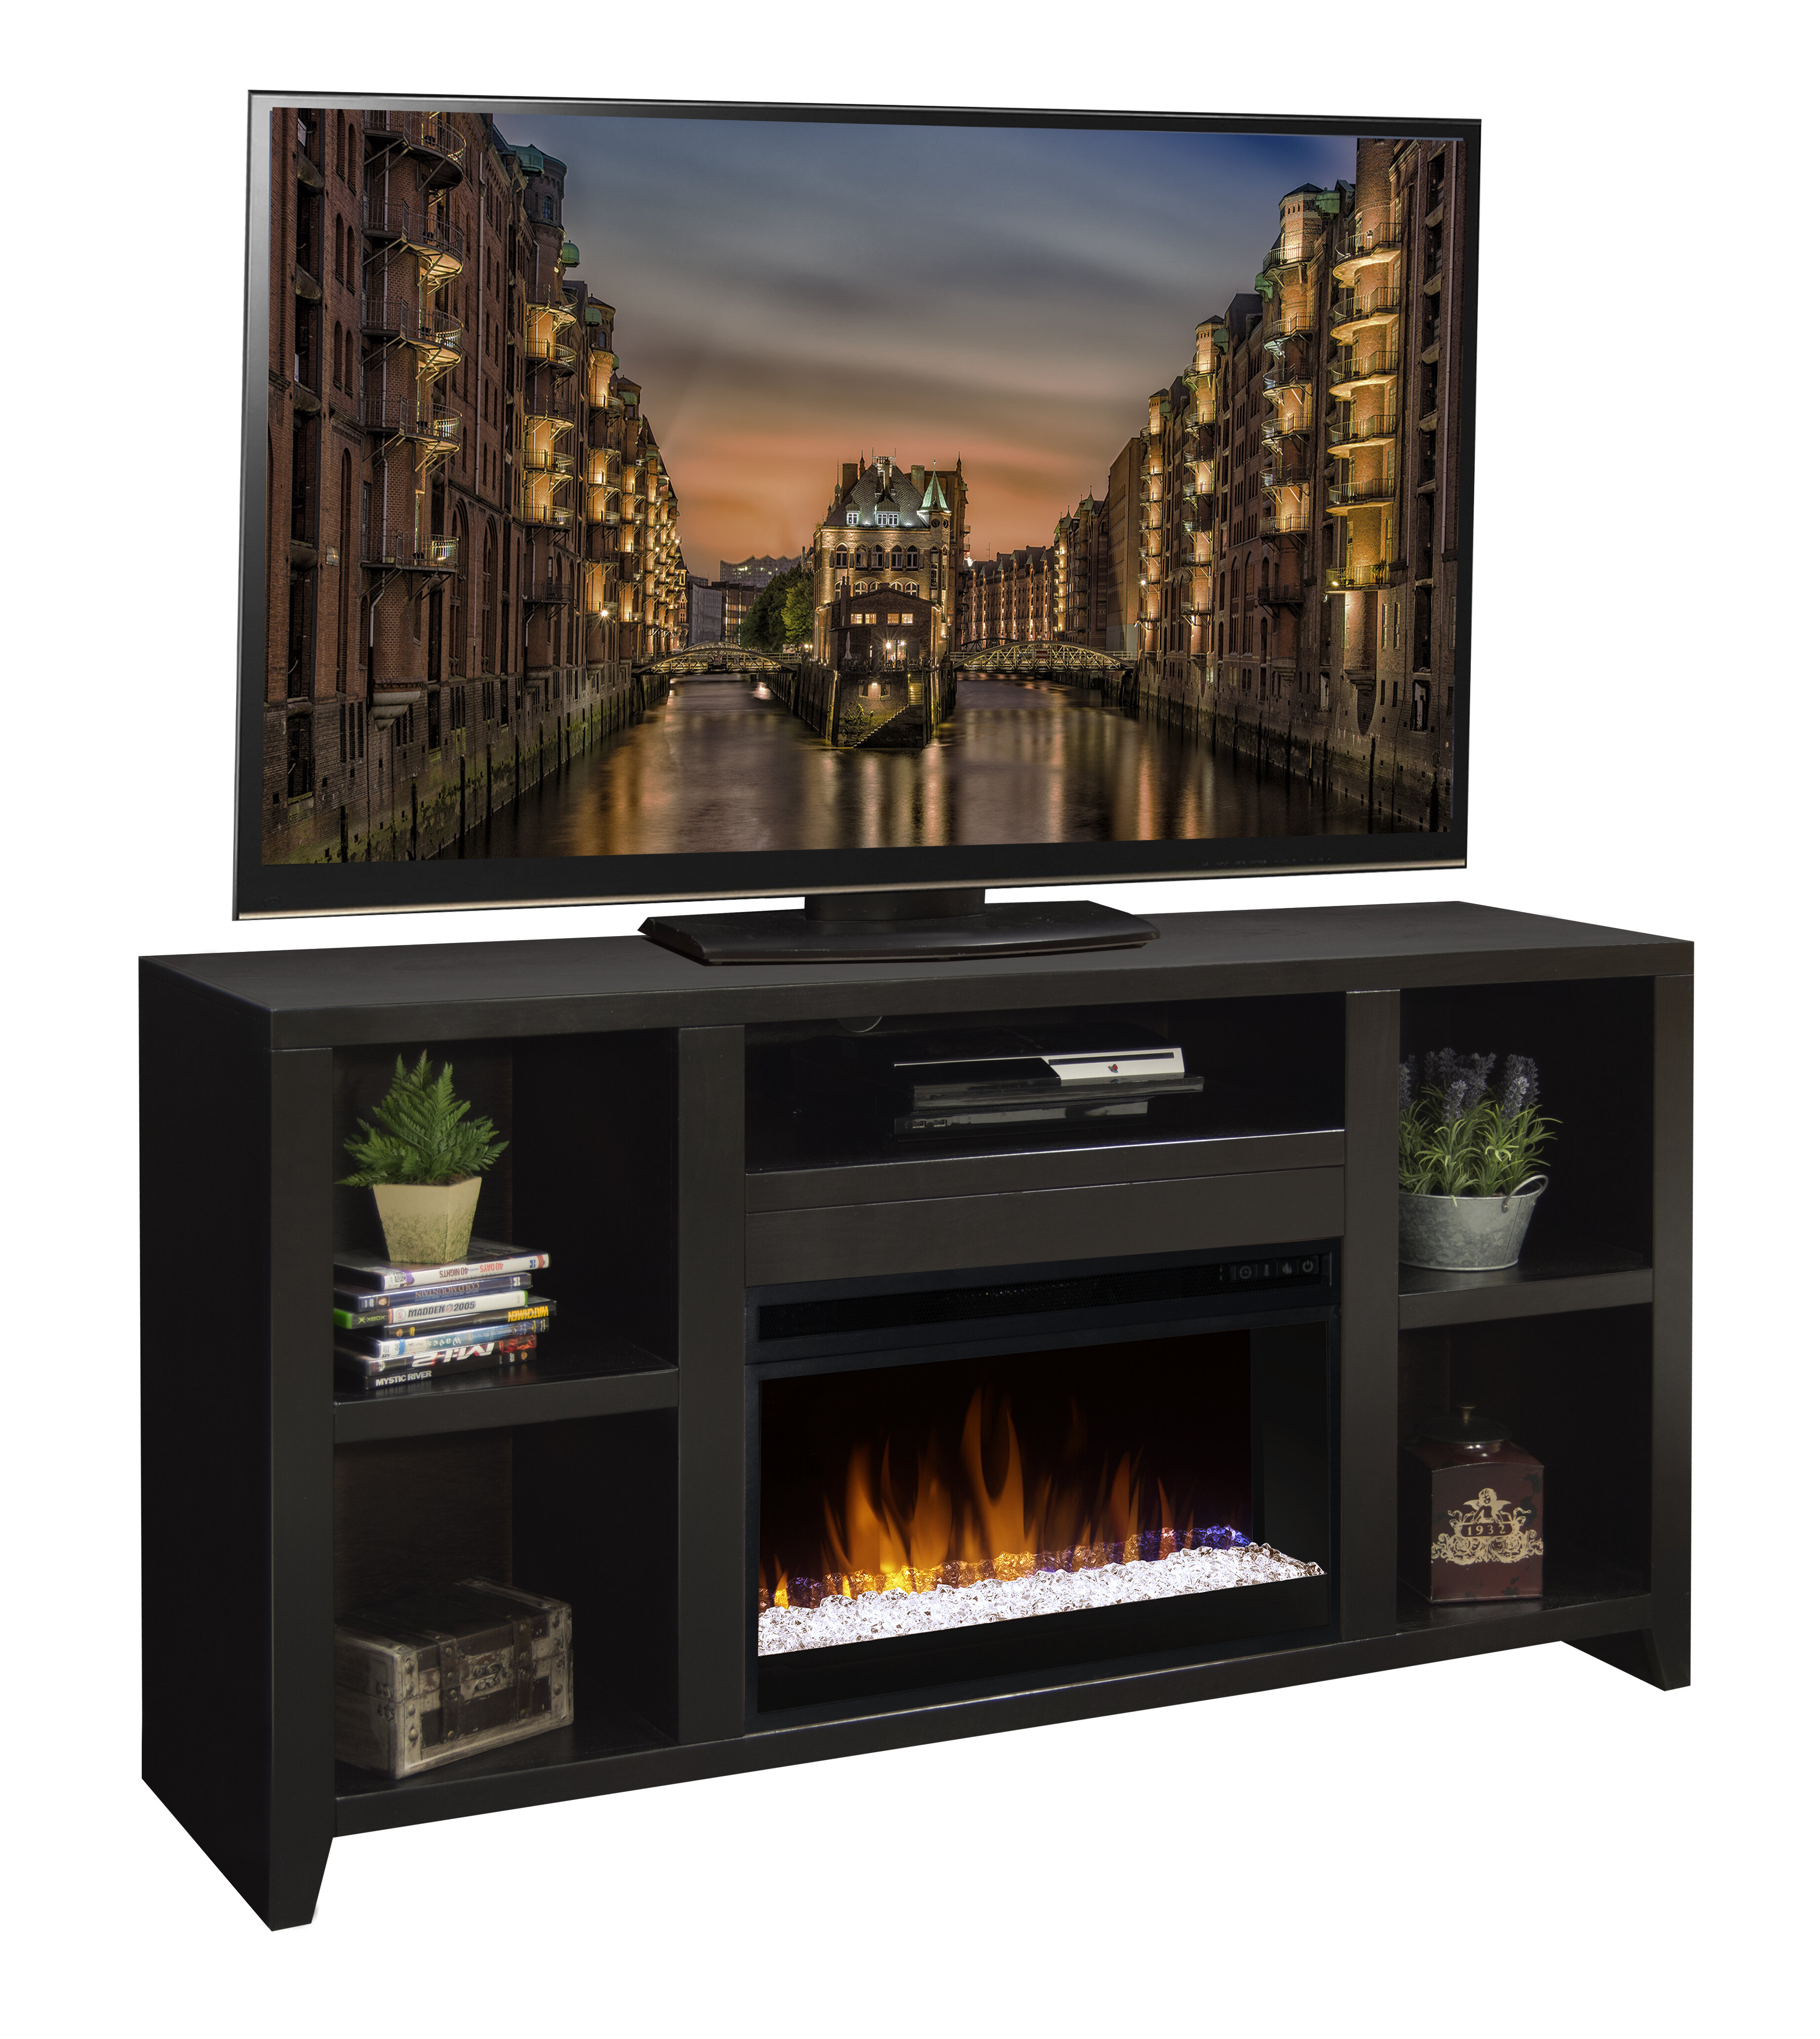 "Tv Stand with Fireplace 65 Inch New Garretson Tv Stand for Tvs Up to 65"" with Fireplace"